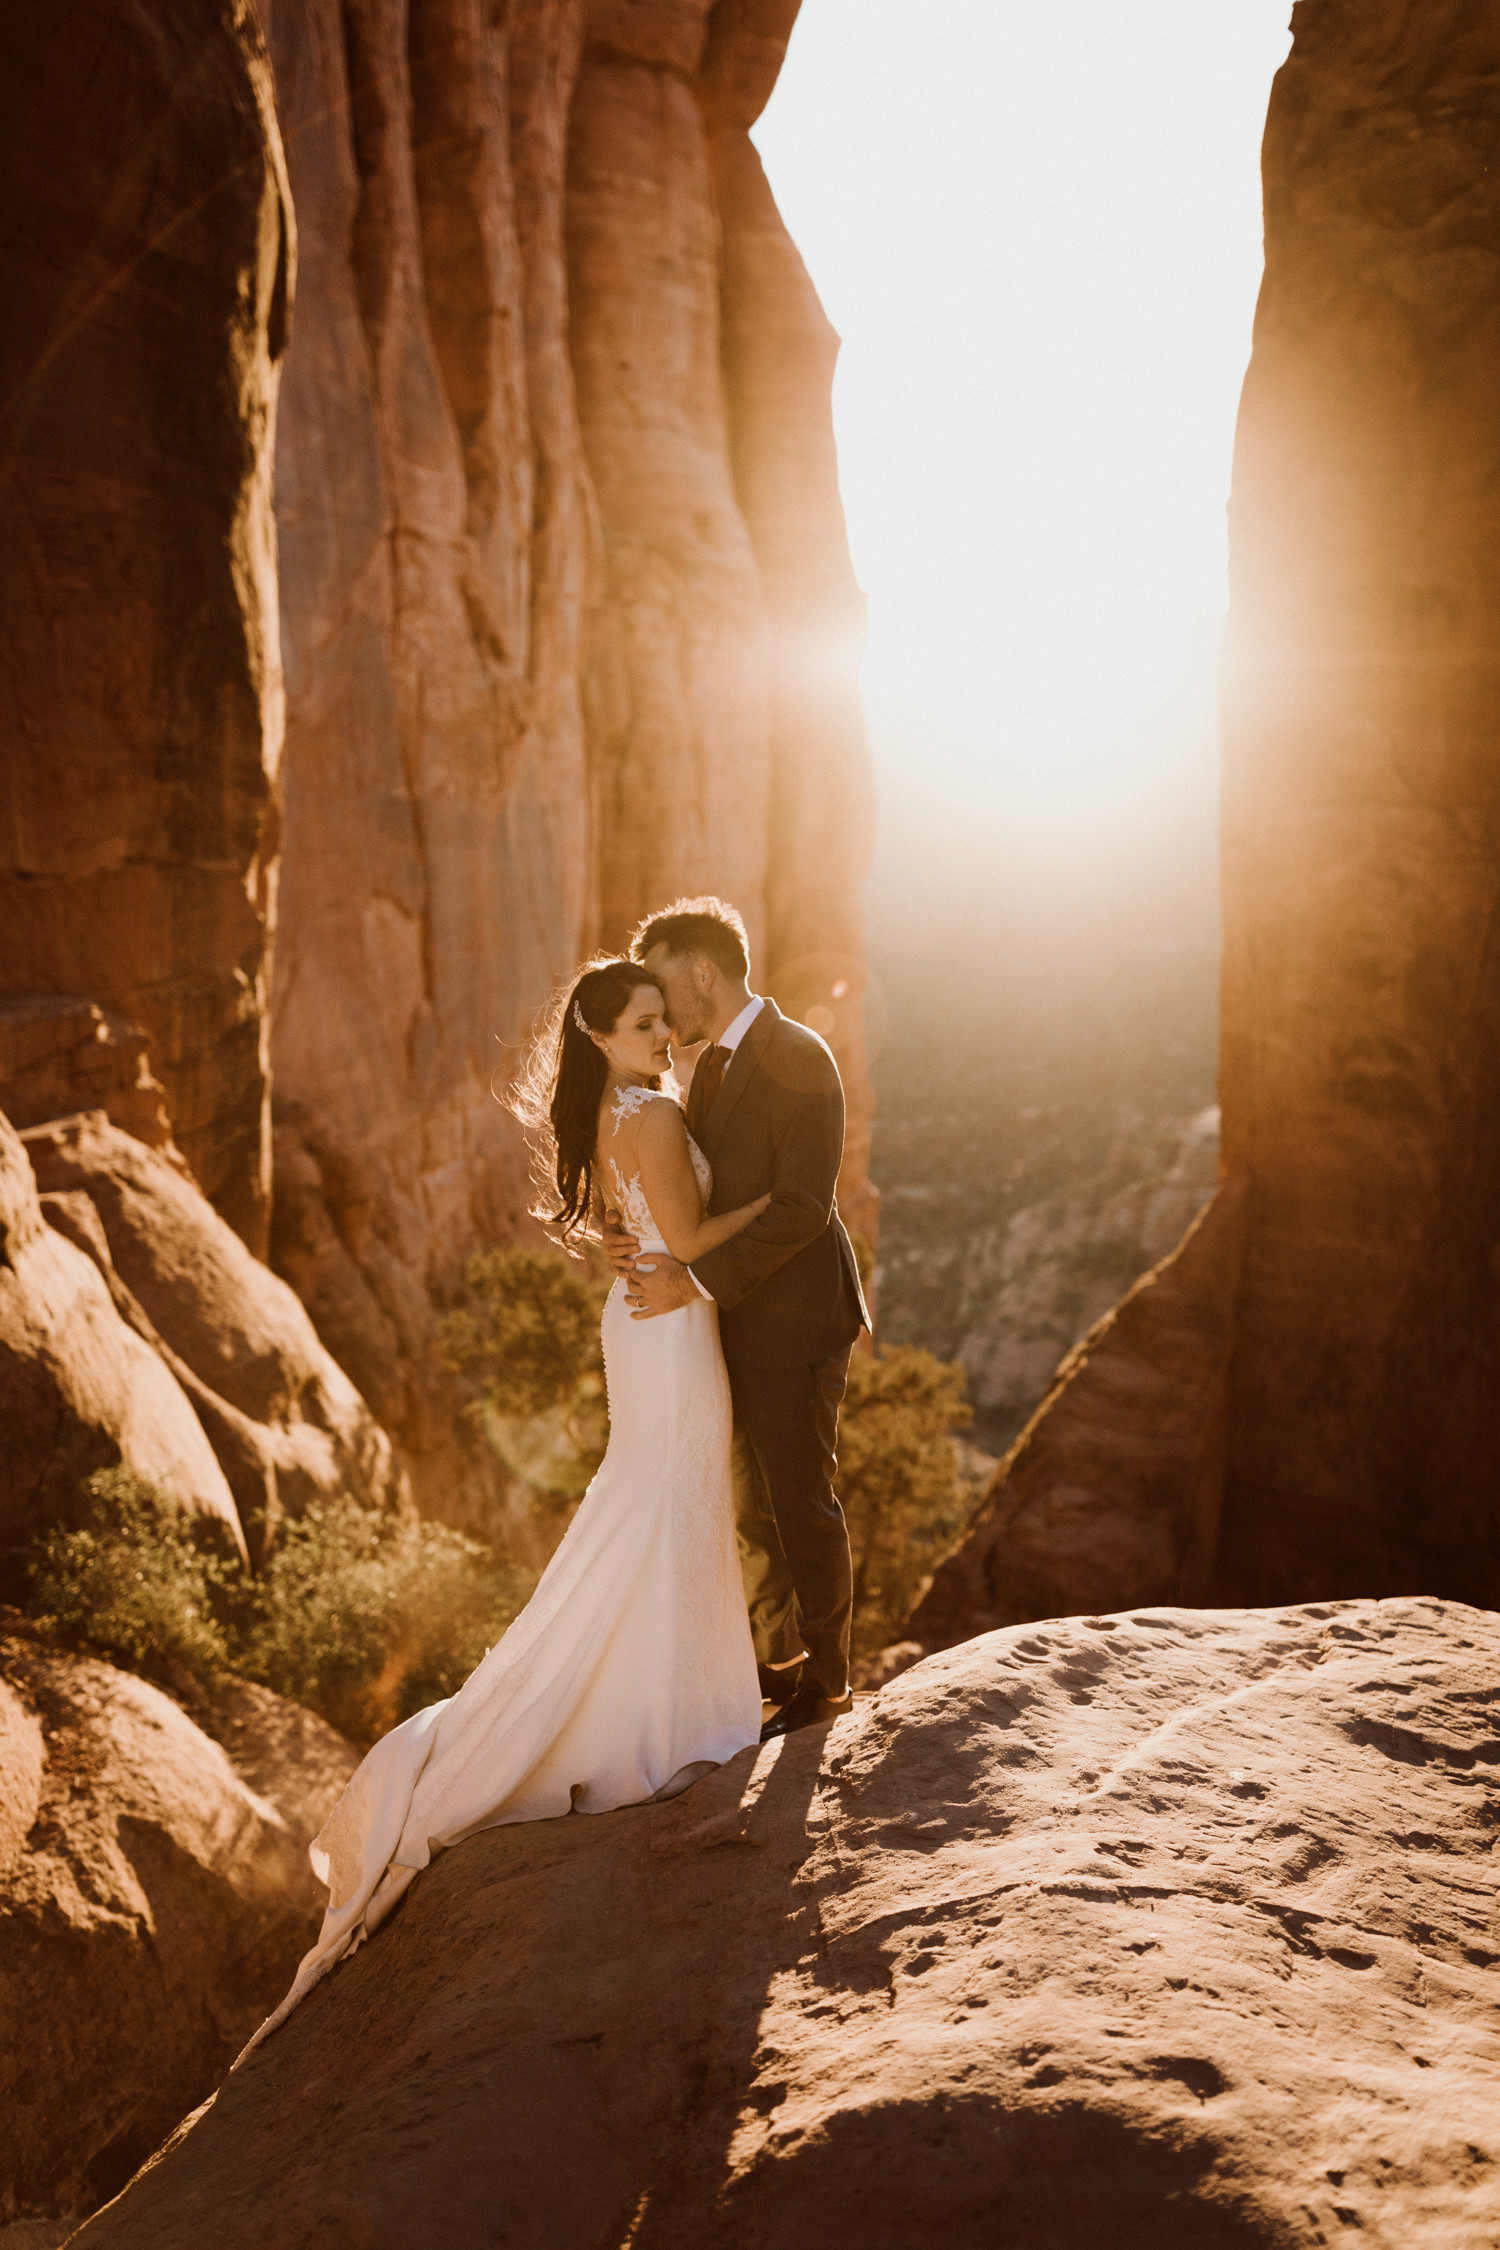 70_intimate-sedona-arizona-wedding-96.jpg